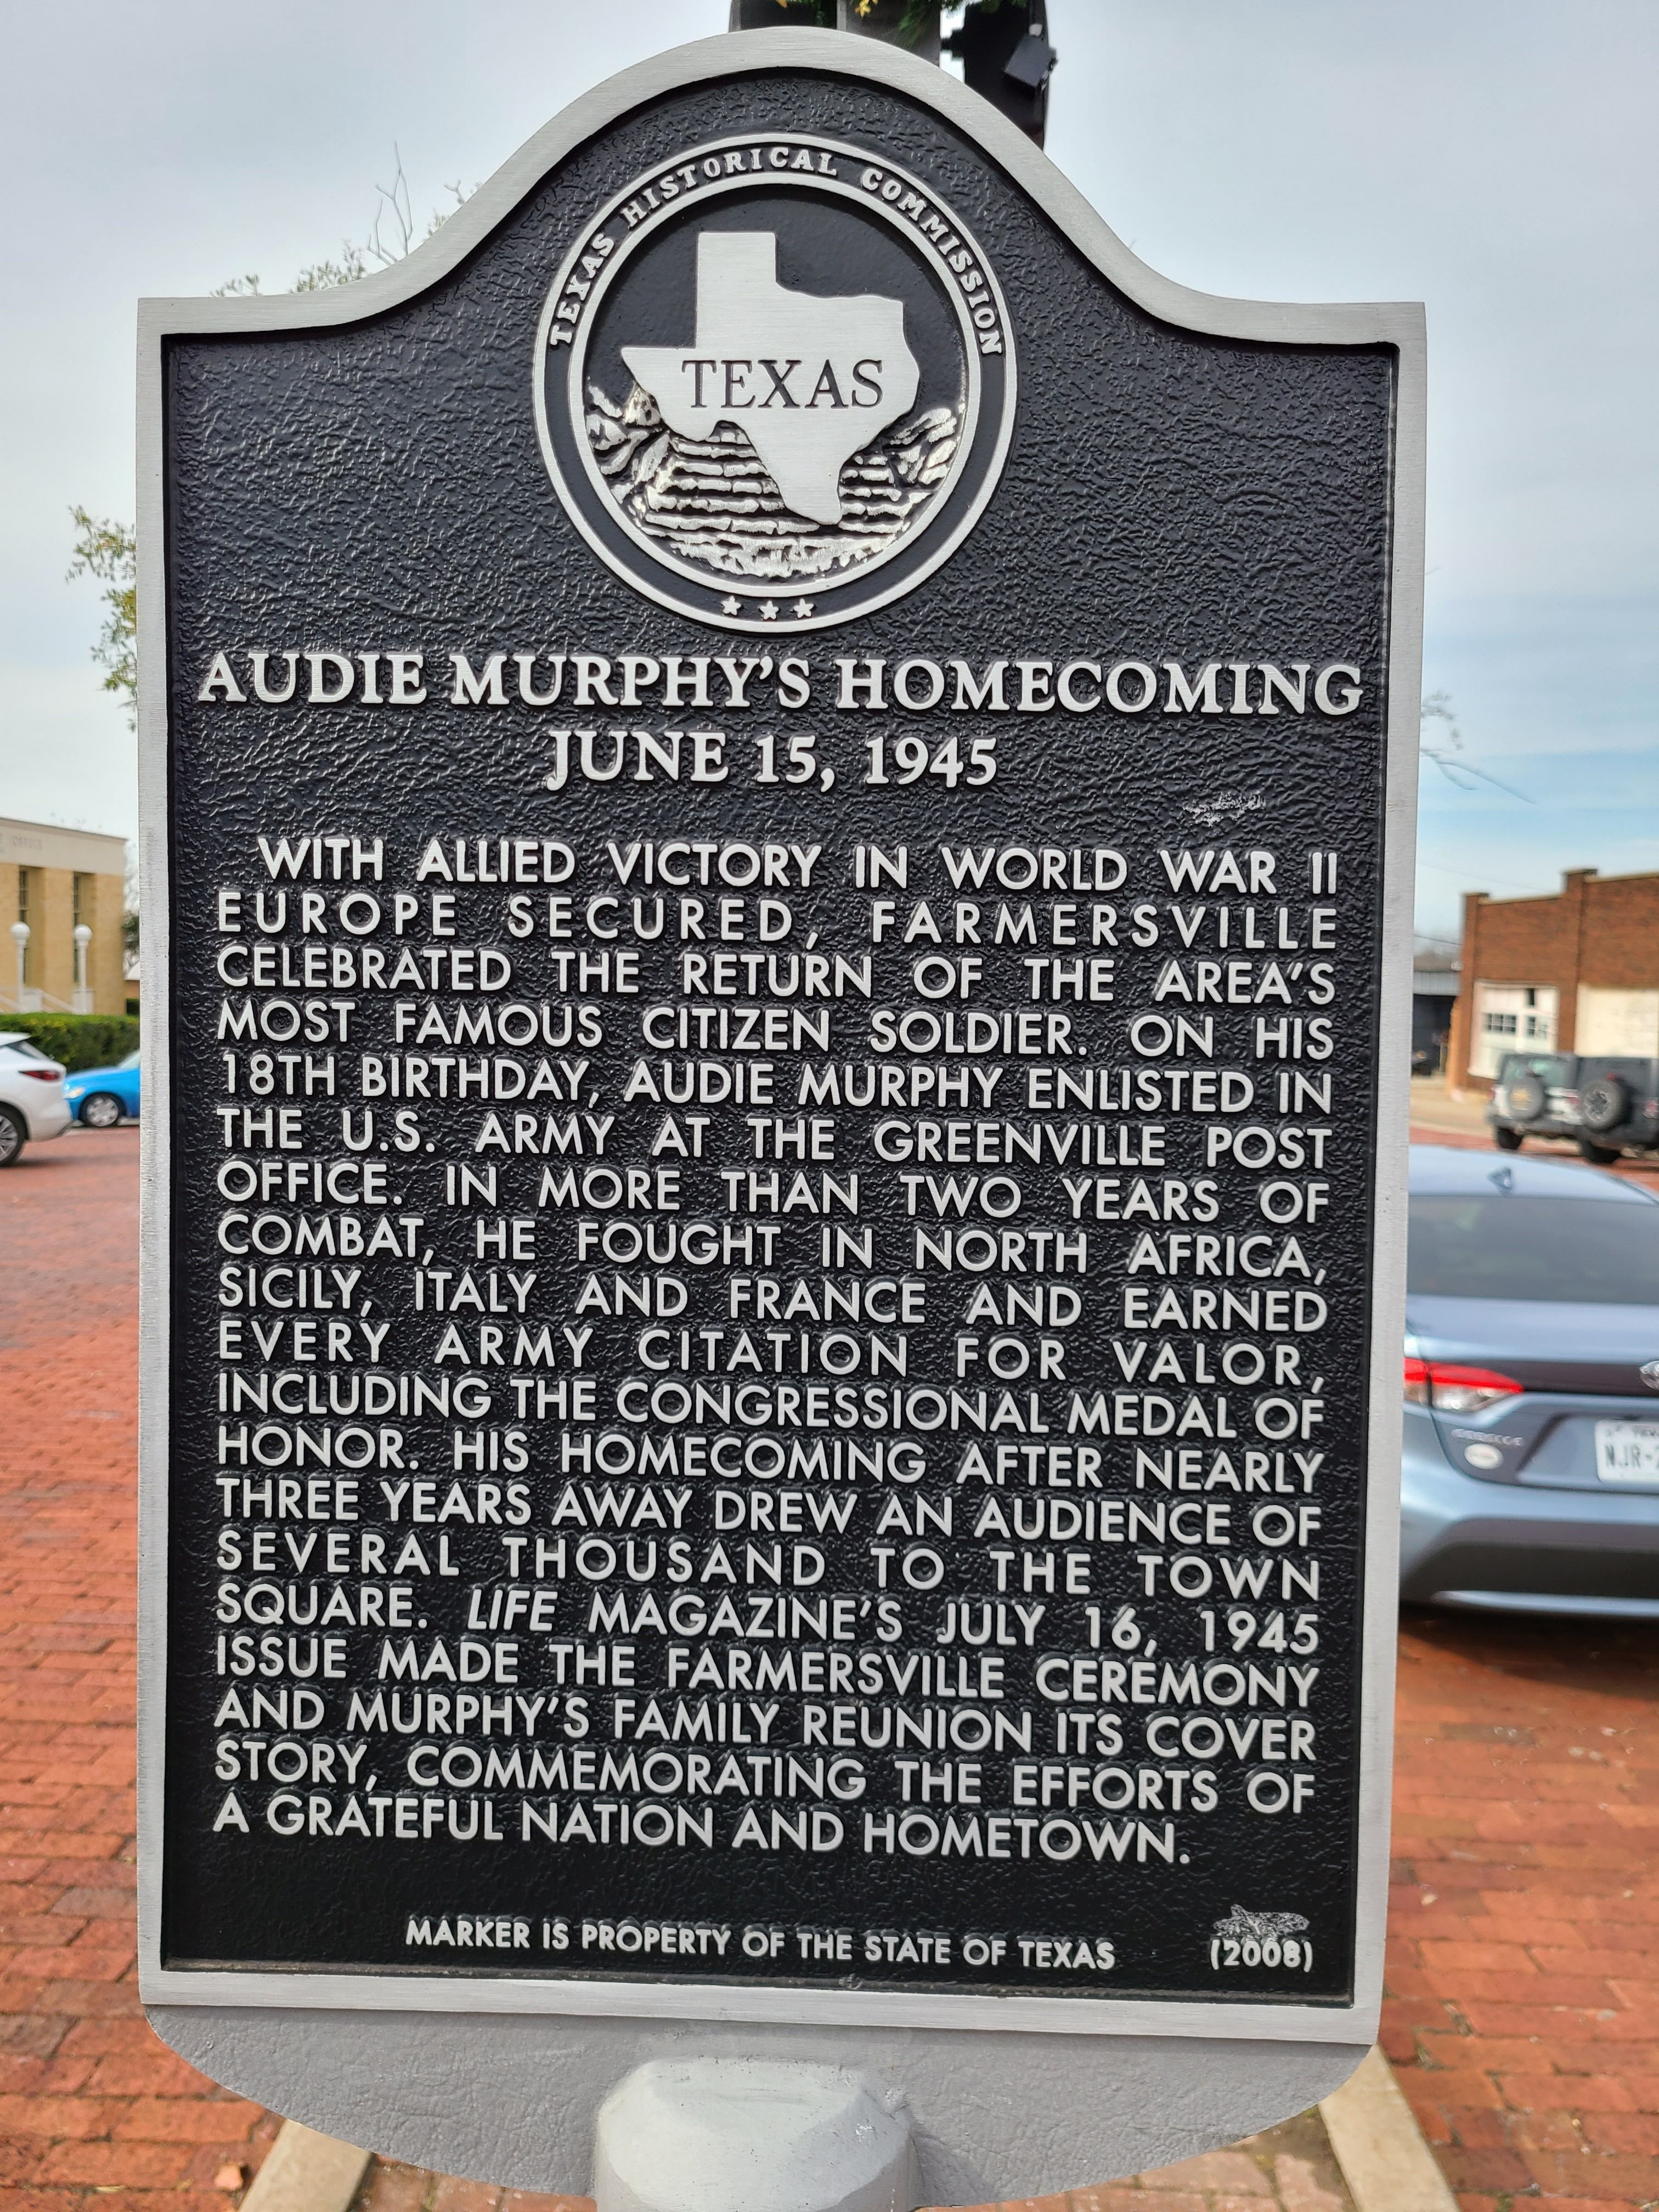 Audie Murphy's Homecoming Marker